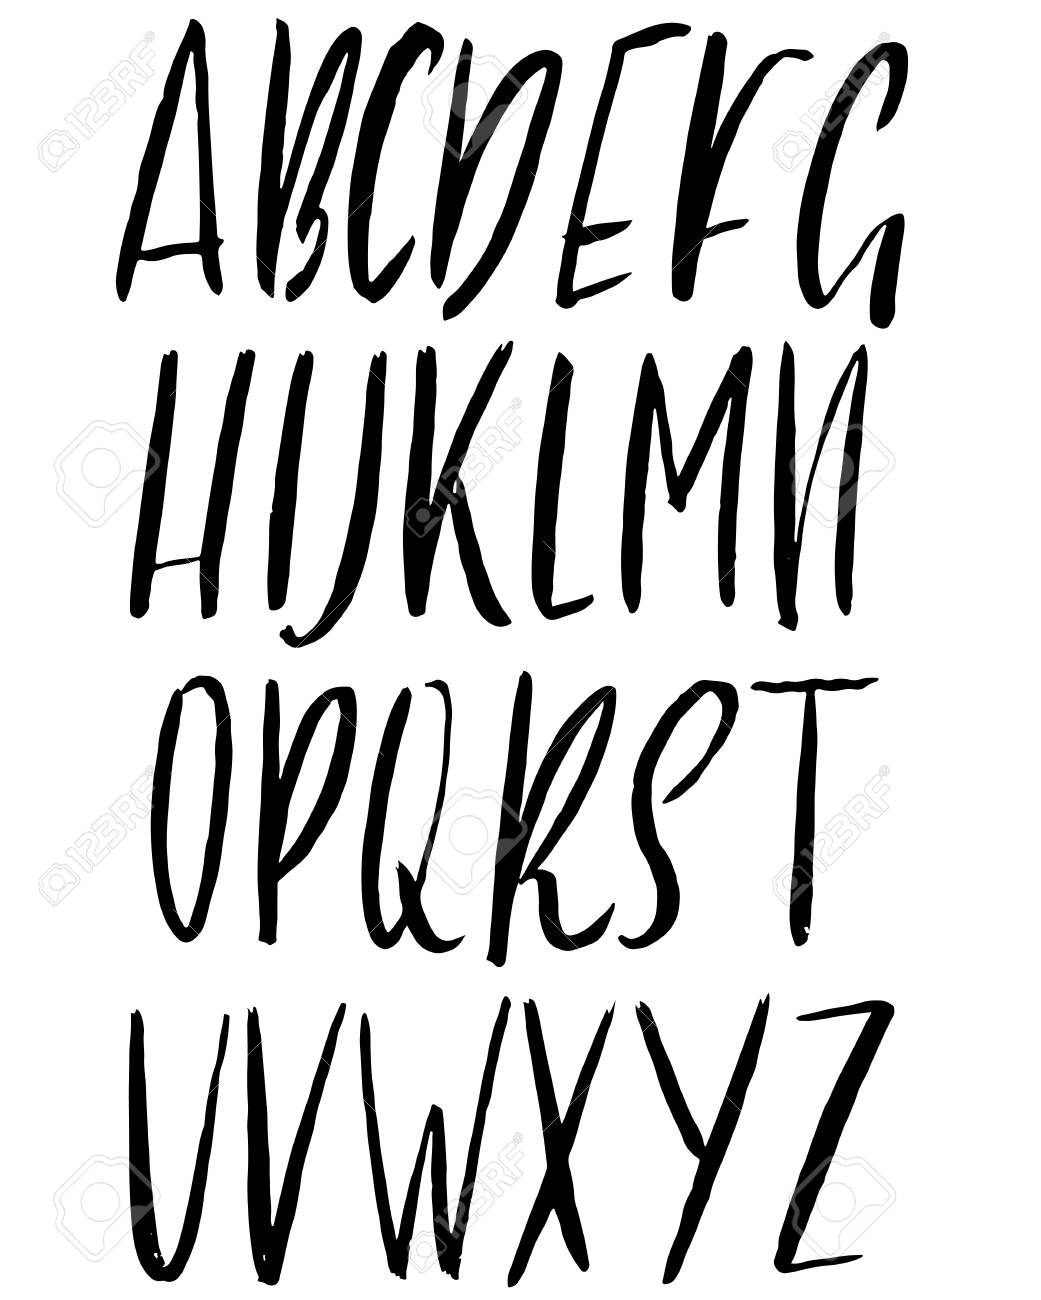 Hand drawn ink simple font  Modern brush lettering  Grunge style